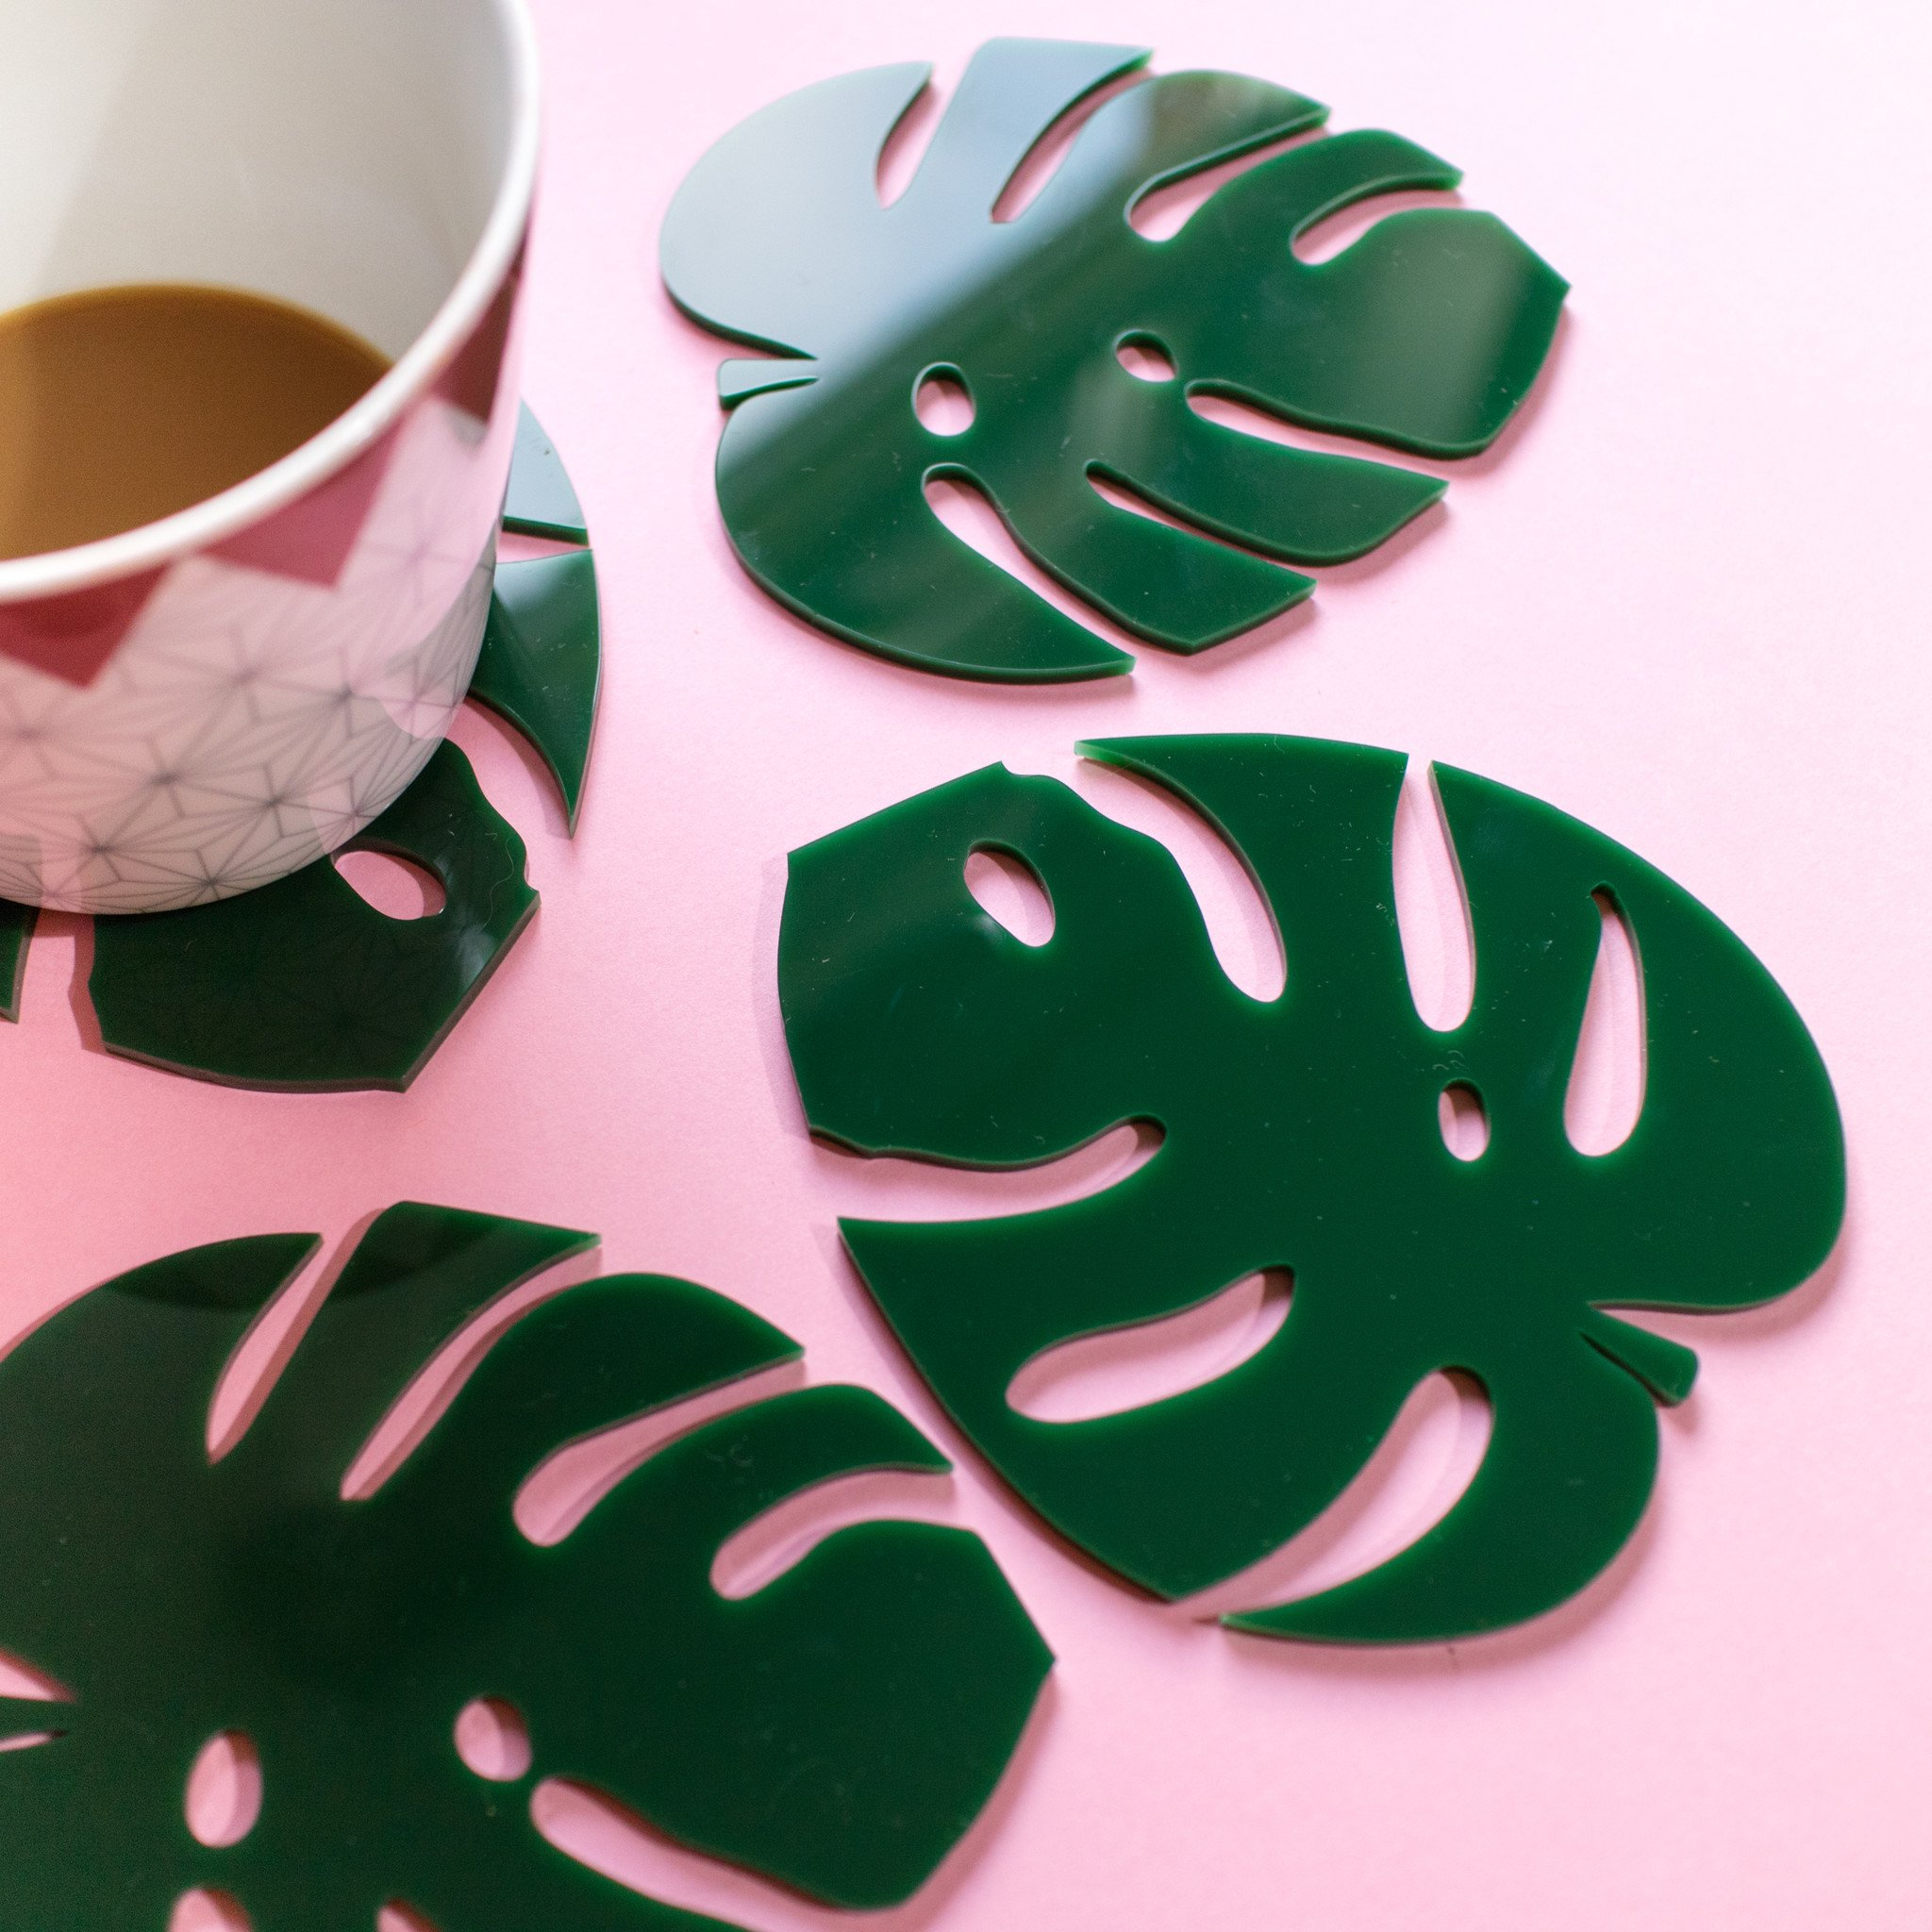 monstera_coasters_5_2048x.jpg